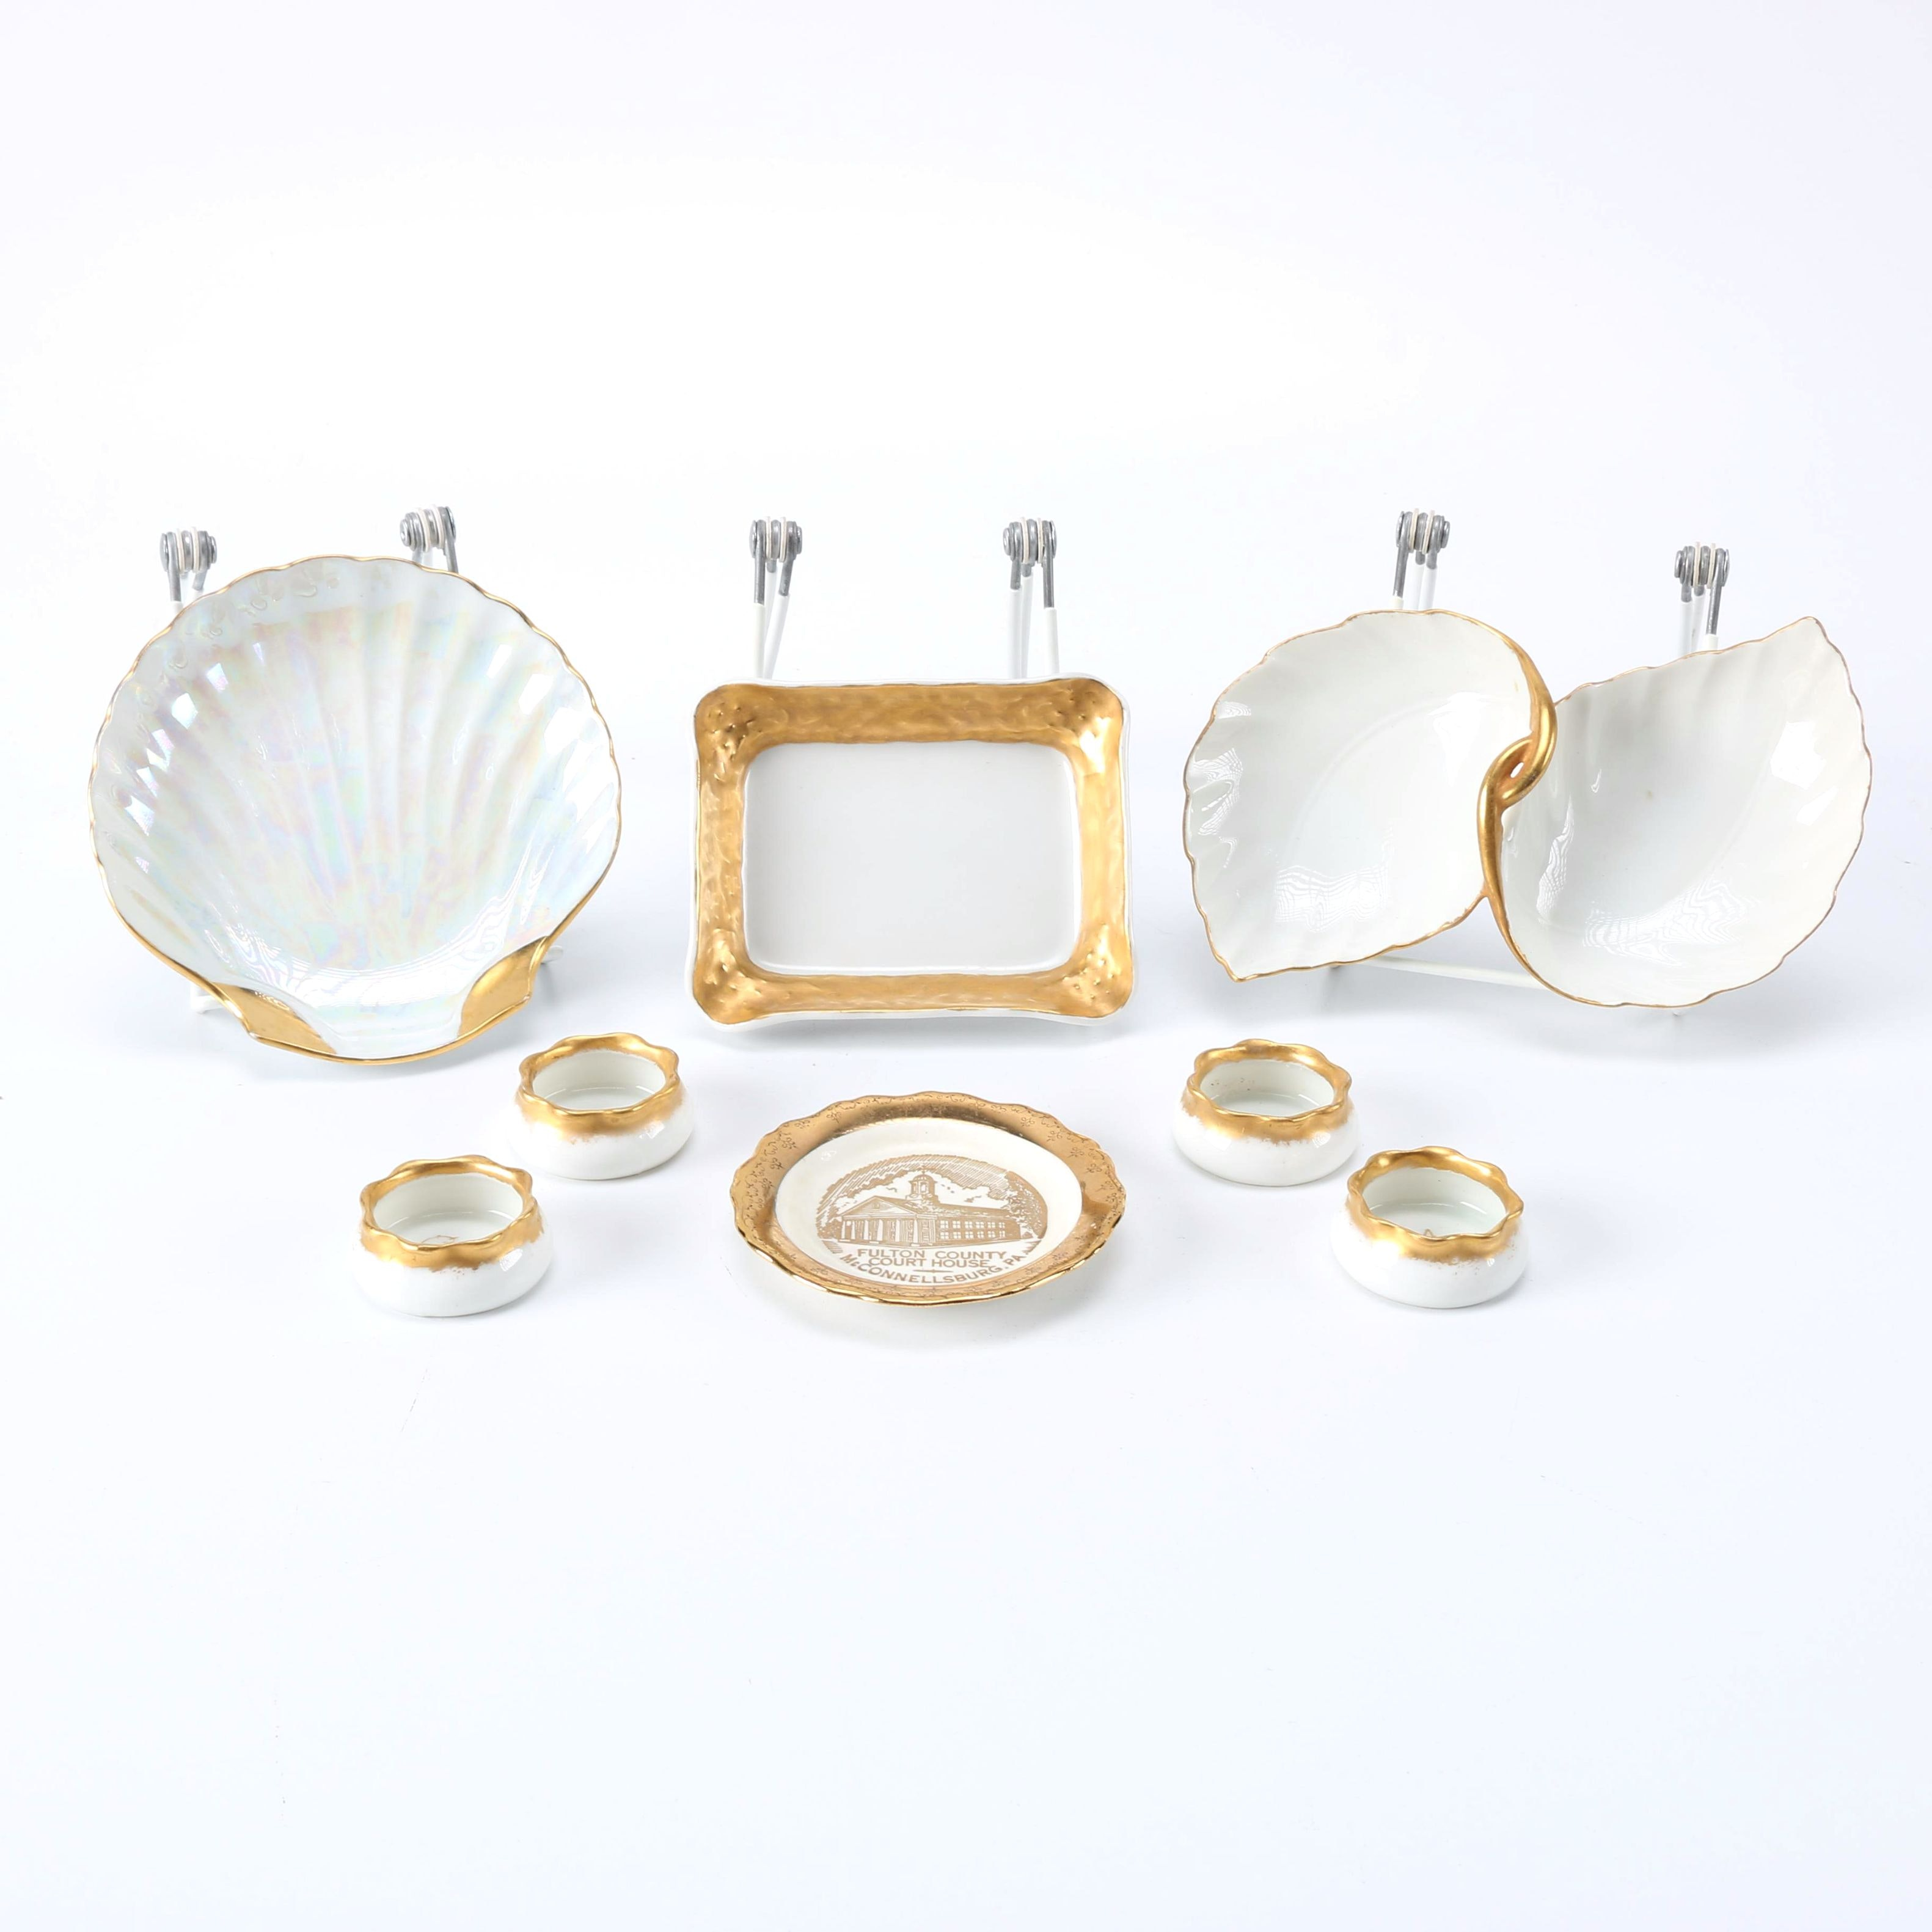 Gold and White Tableware